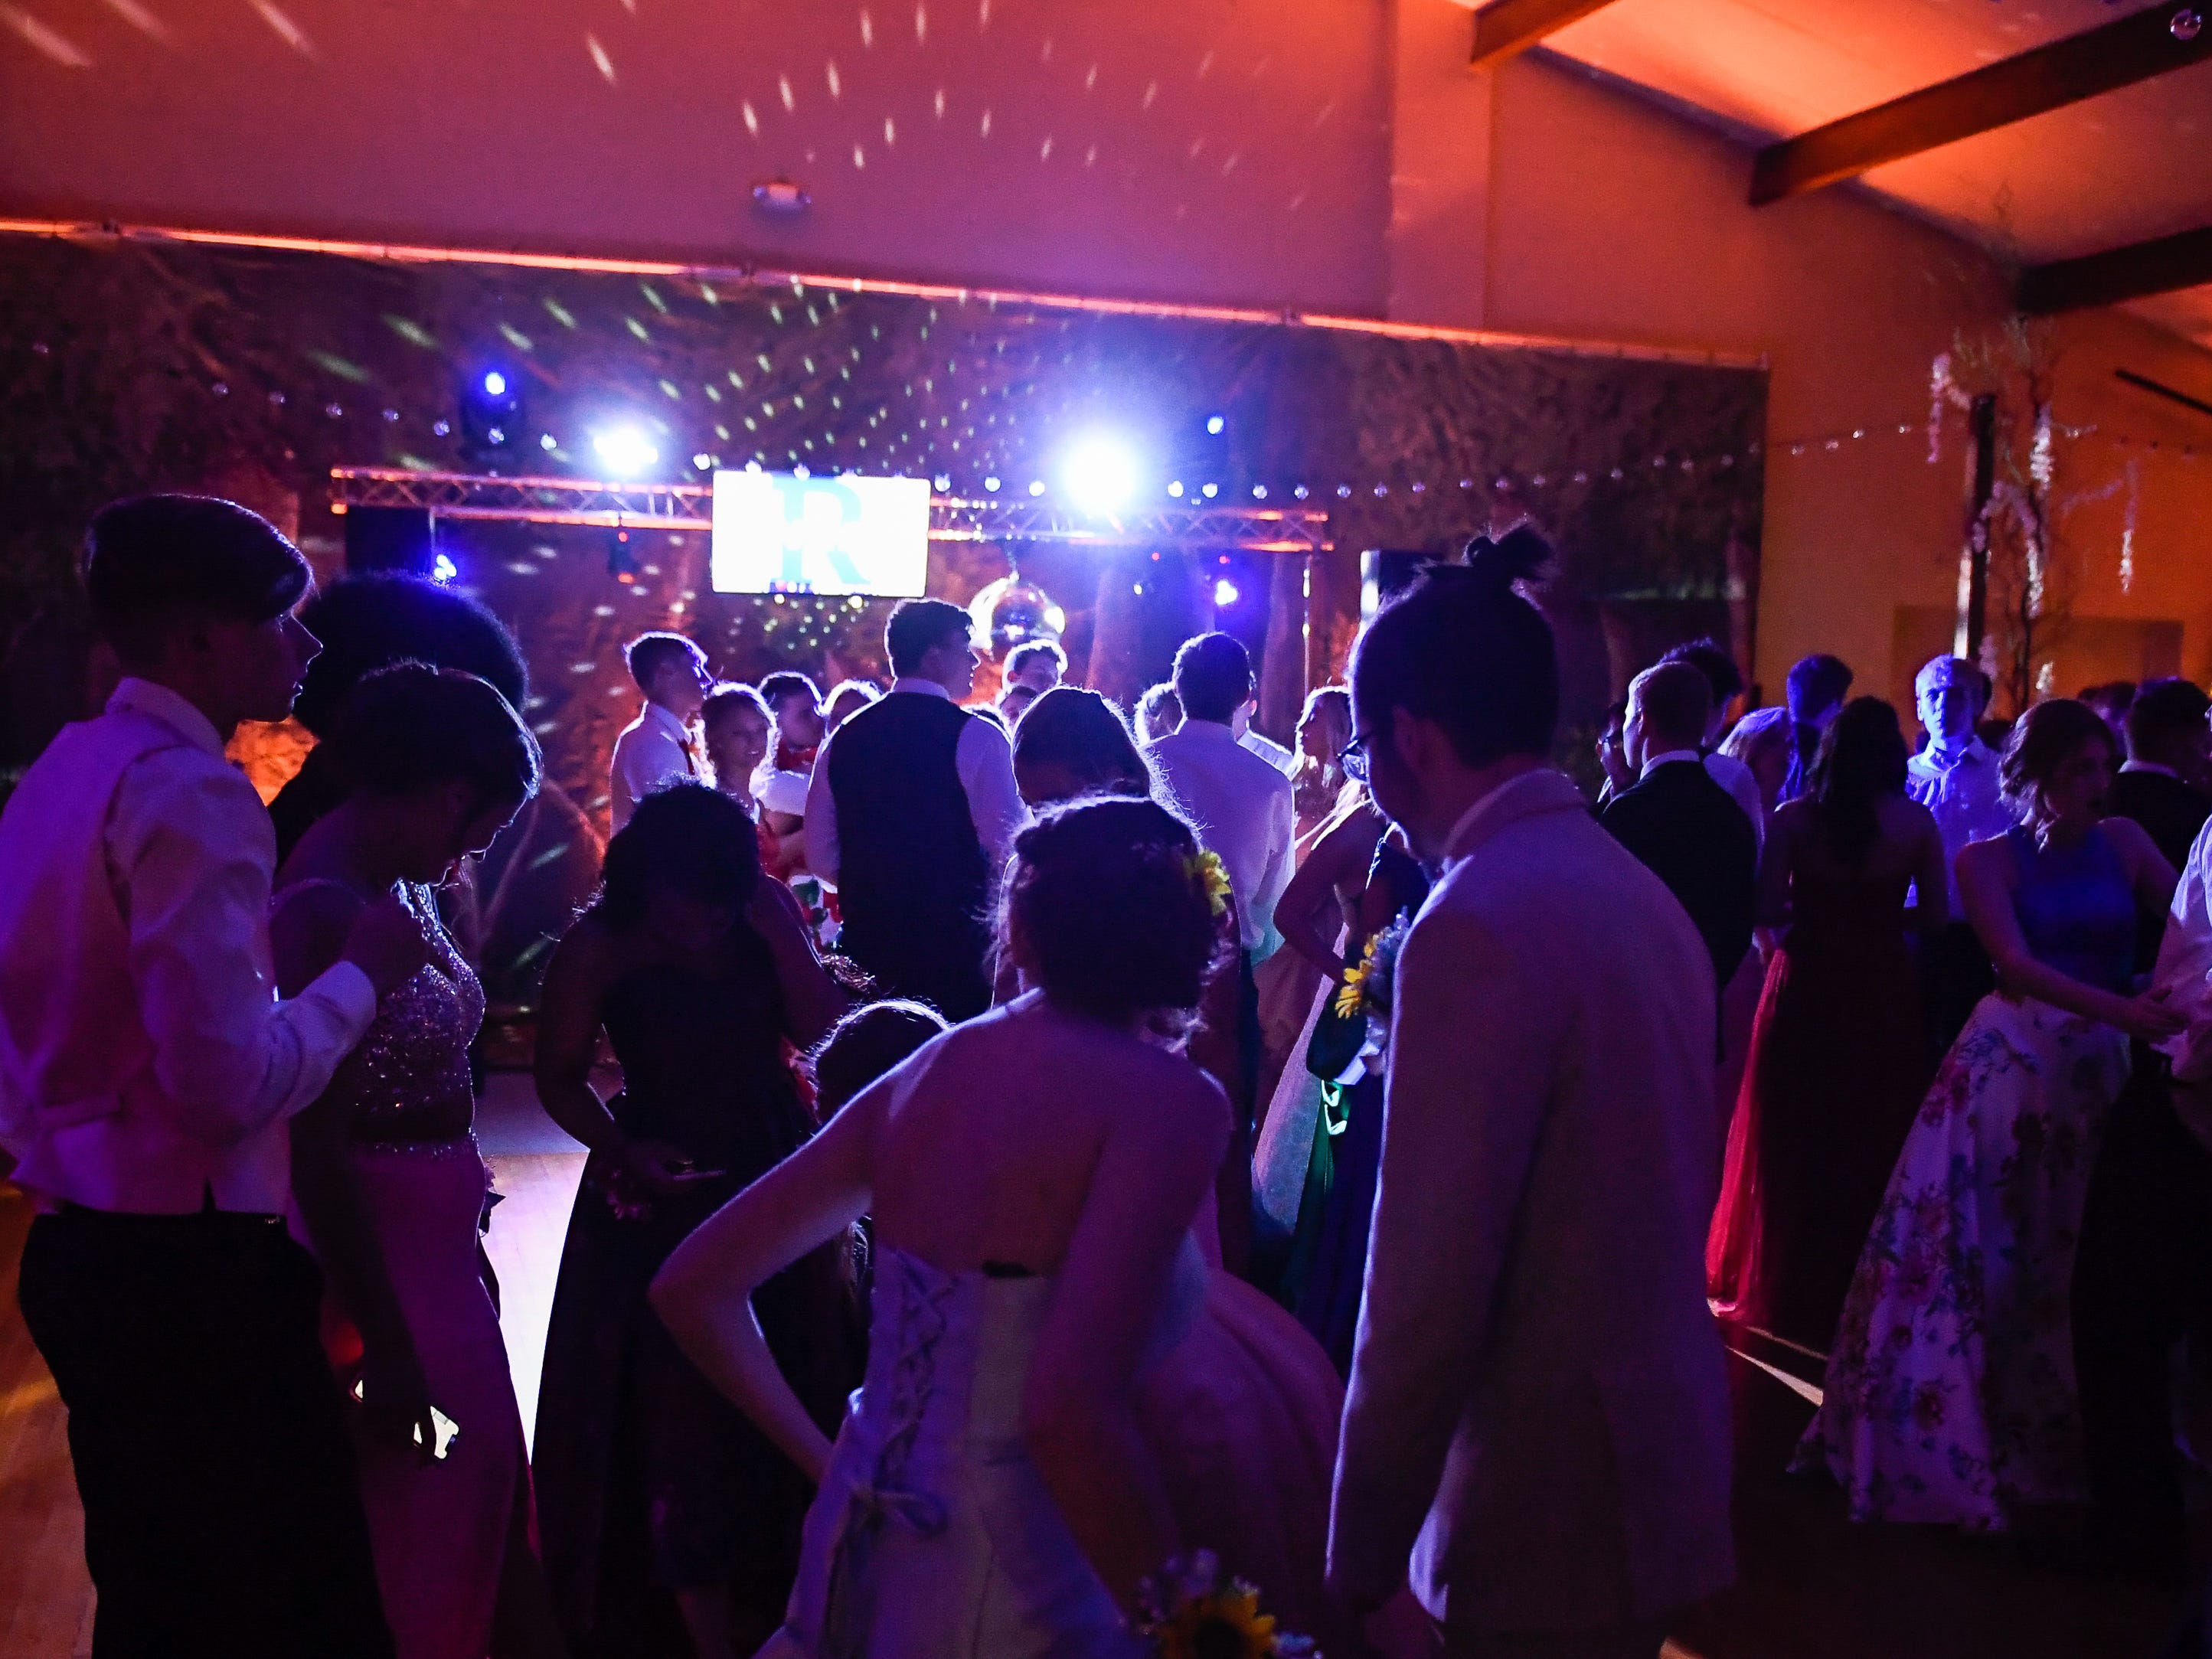 The dance floor at the Reitz High School Prom held at the Vanderburgh 4-H Center Saturday, April 13, 2019.